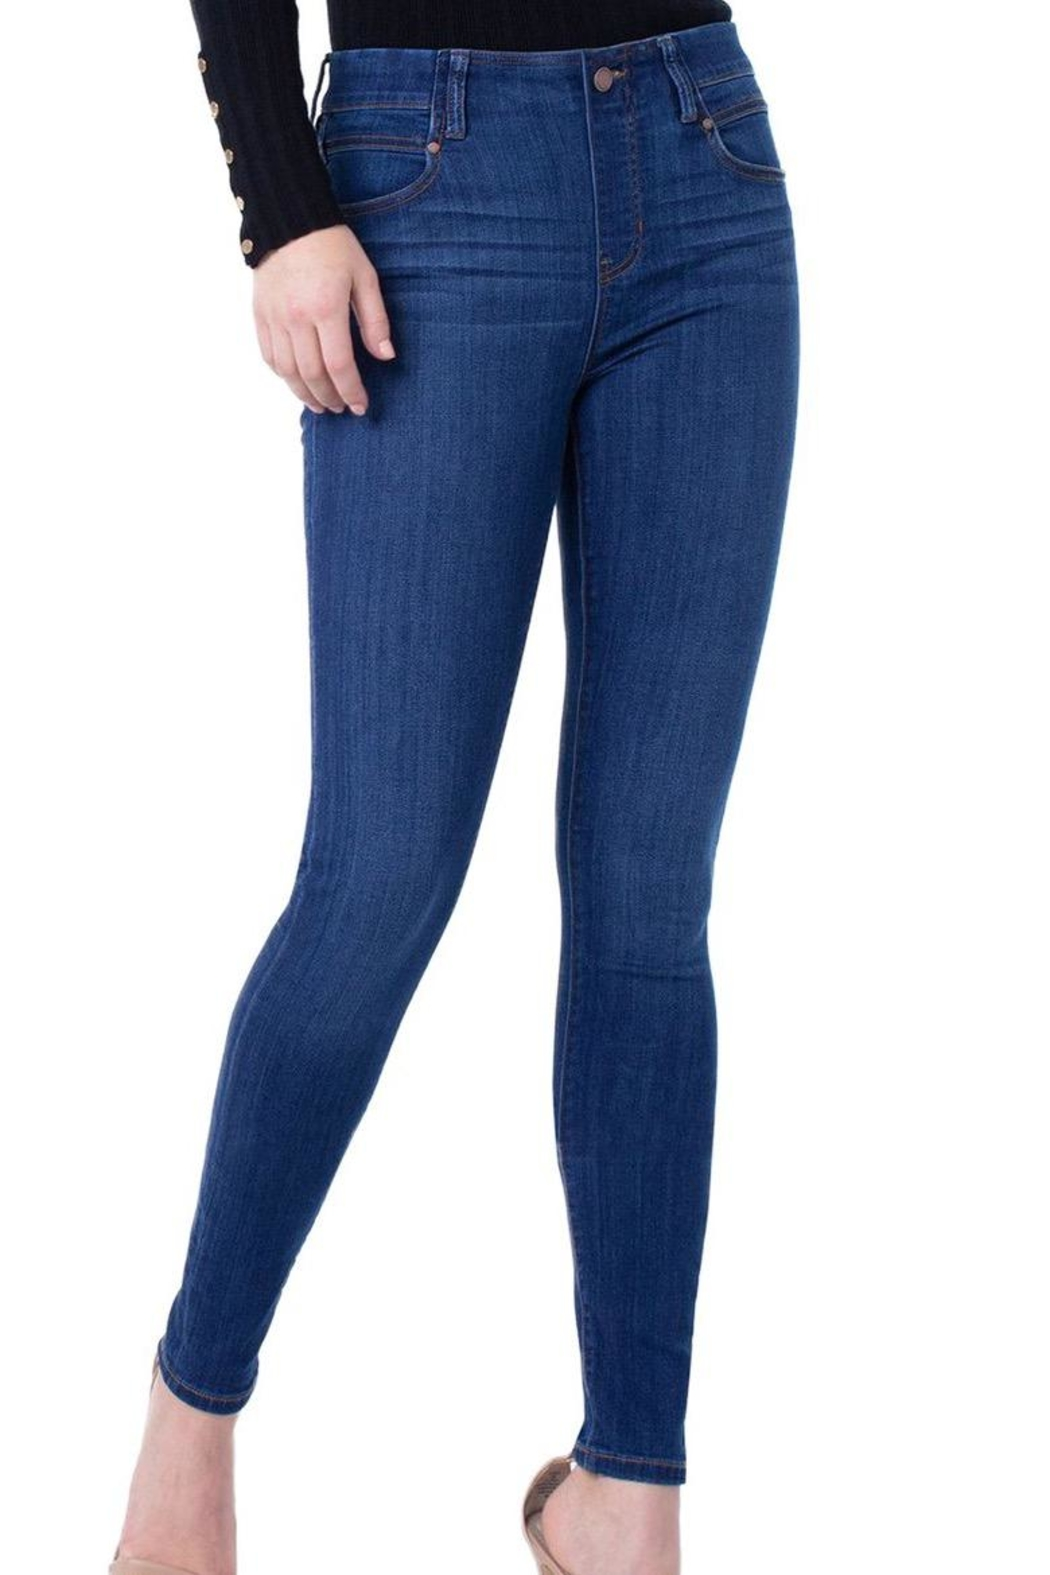 Liverpool Jeans Company Pull-On Denim Jeans - Side Cropped Image